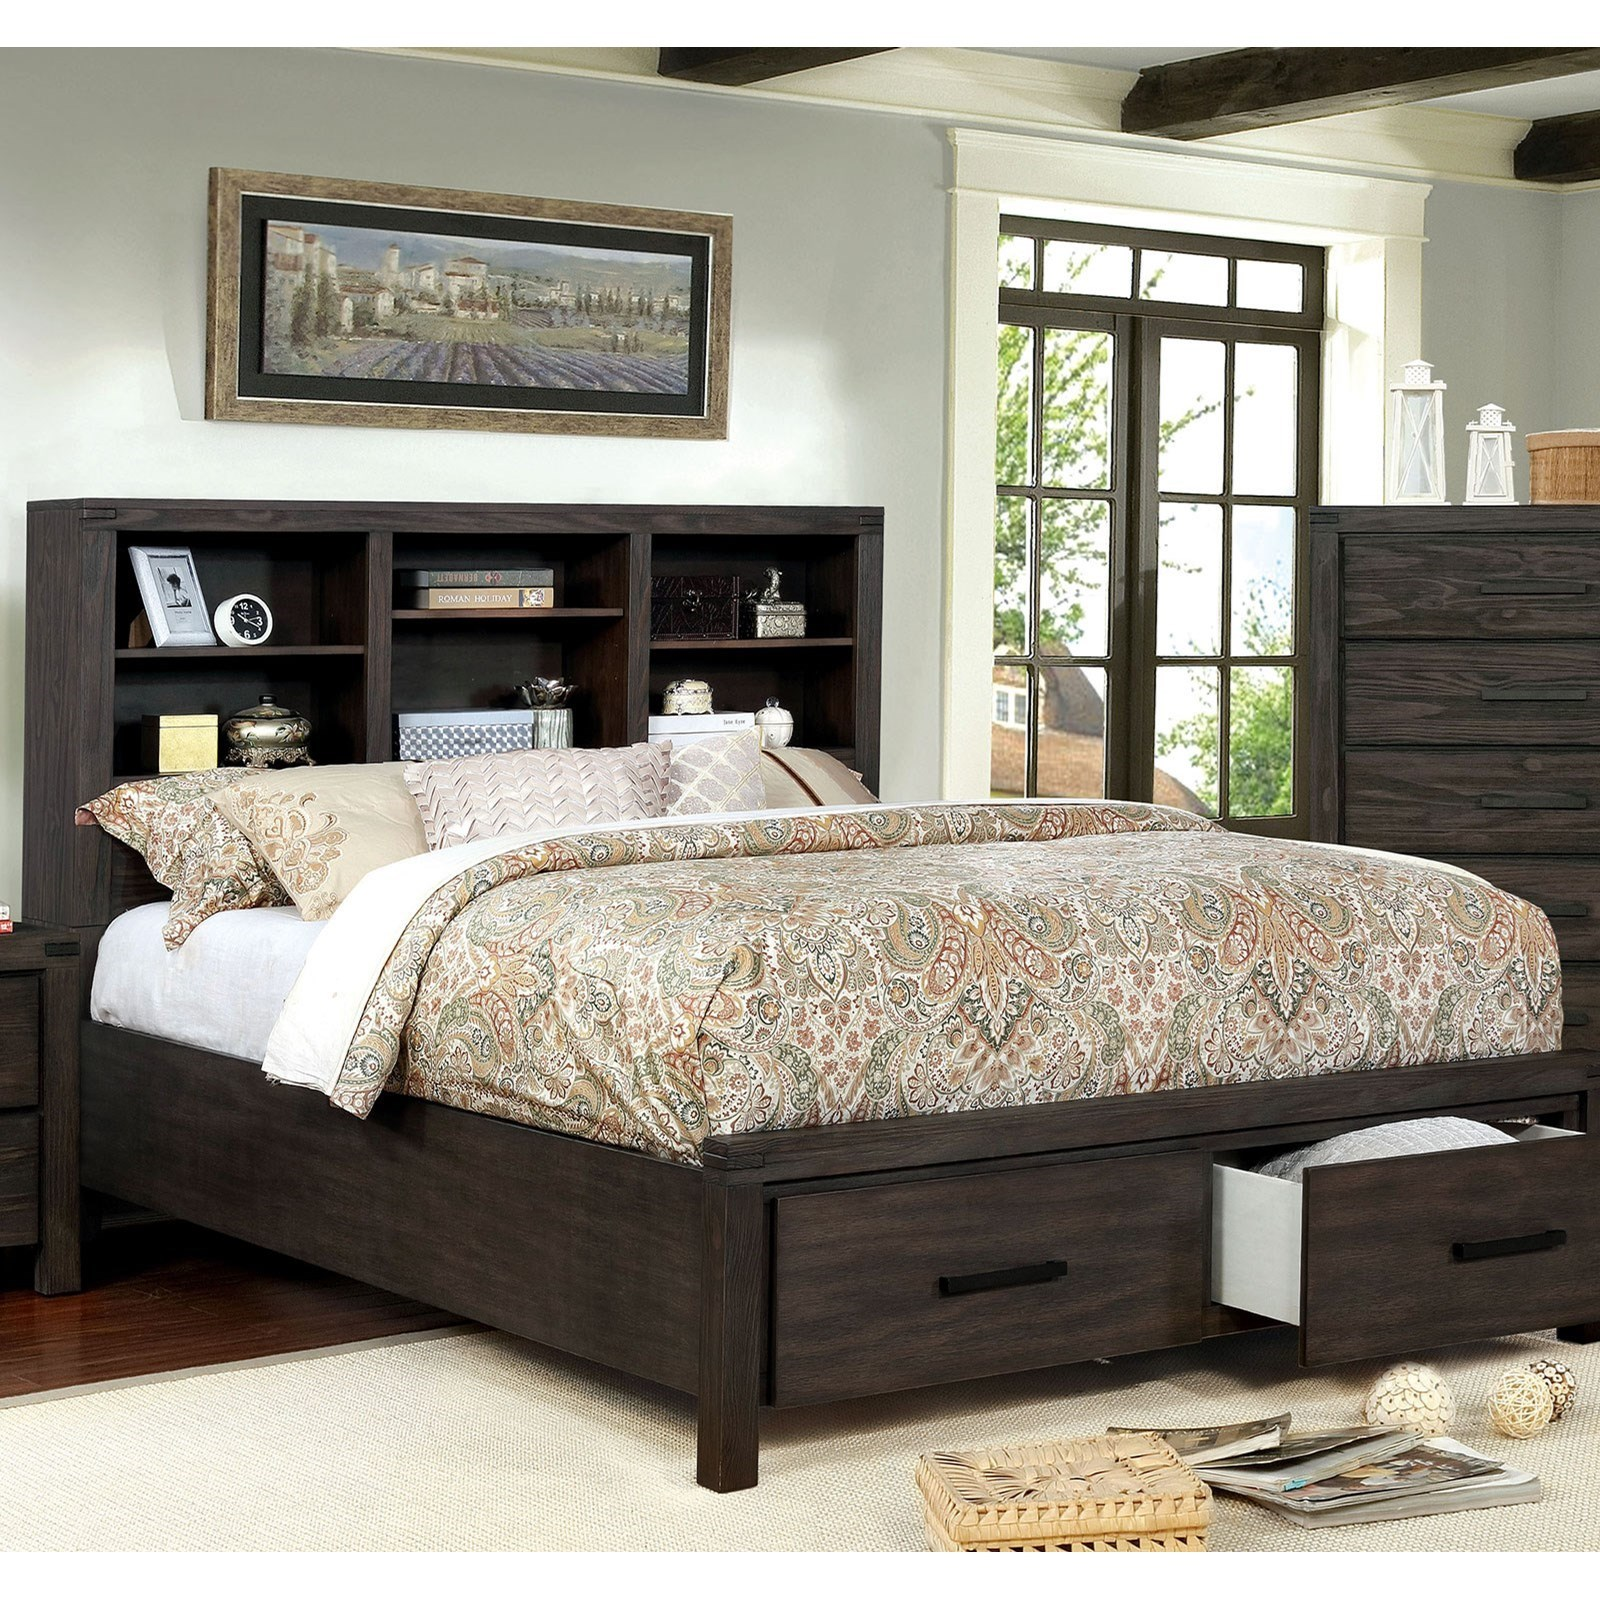 Furniture Of America Strasburg Cm7384br Ck Bed Rustic California King 2 Drawer Storage Bed With Open Bookcase Headboard Corner Furniture Panel Beds